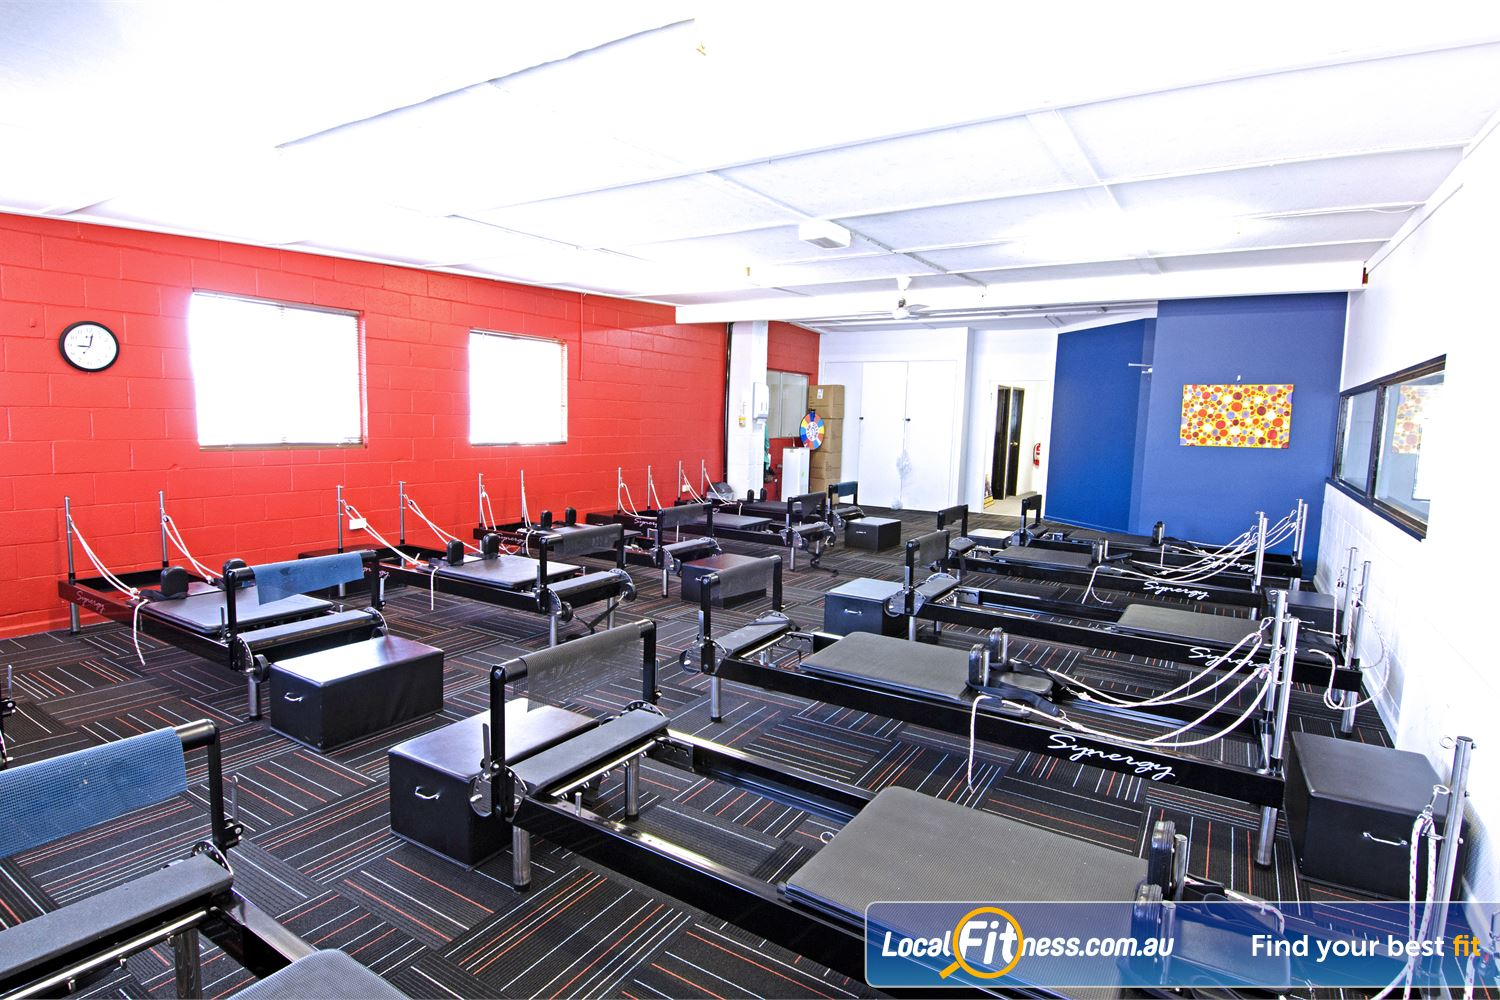 Goodlife Health Clubs Near Sherwood State of the art Graceville Pilates beds from Calgym Synergy.